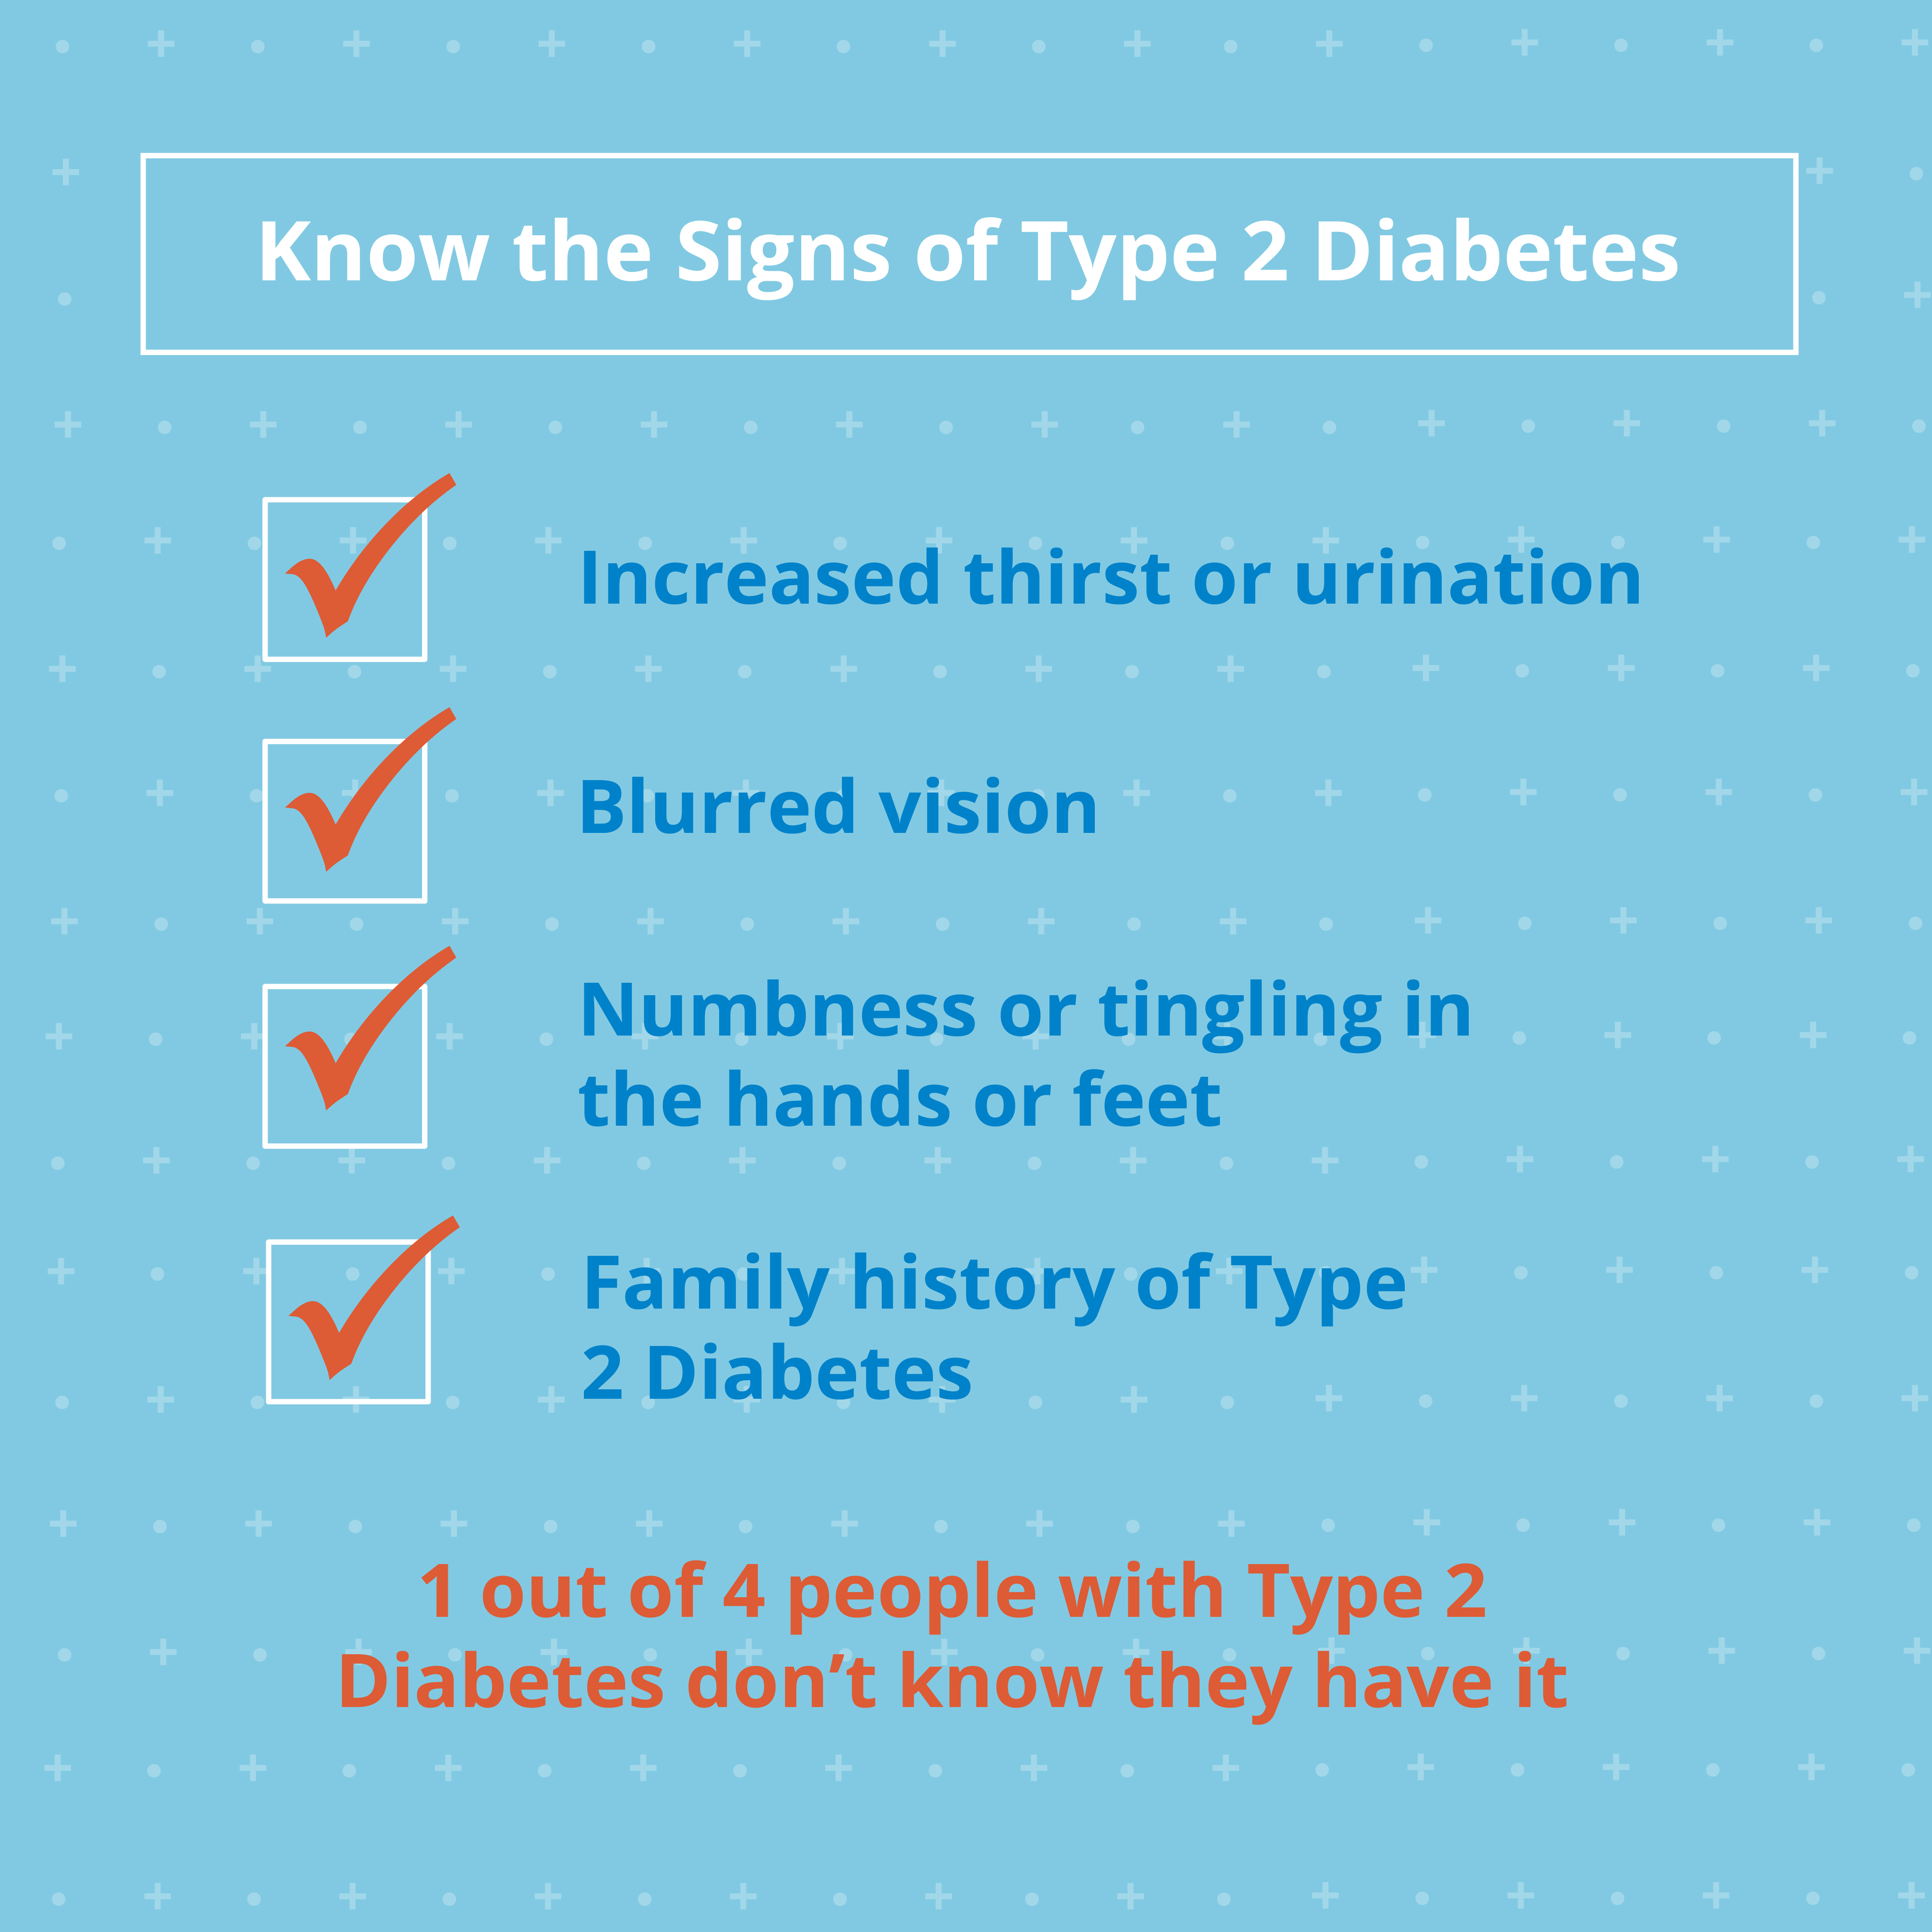 Know the signs of type 2 diabetes: increased thirst or urination, blurred vision, numbness in hands or feet, family history of type 2 diabetes